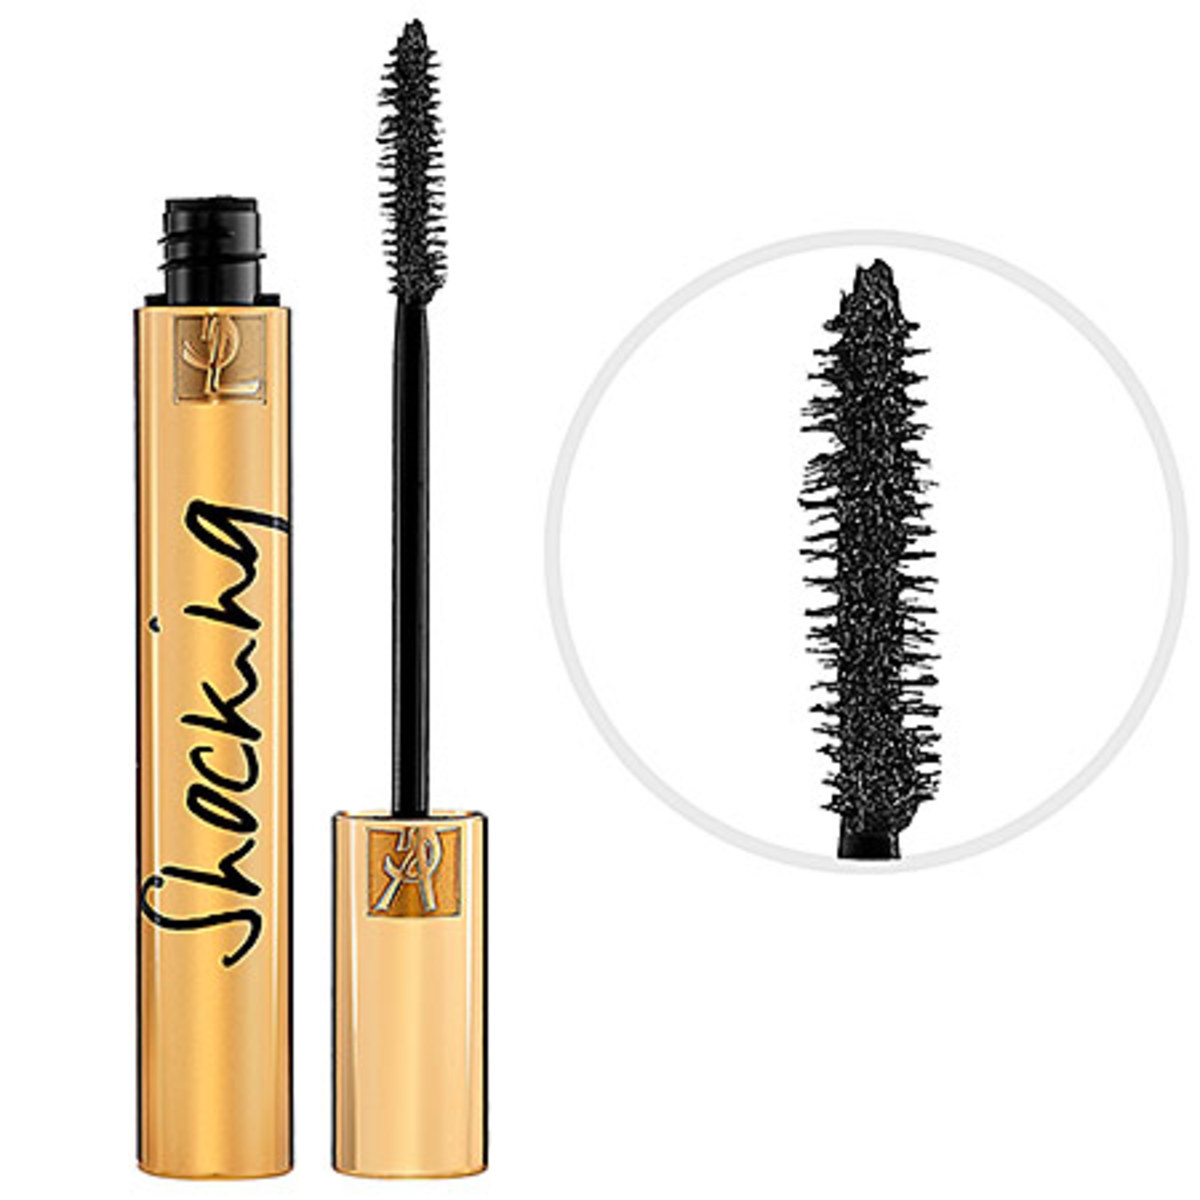 Yves Saint Laurent Mascara Volume Effet Faux Cils Shocking in #1 Deep Black